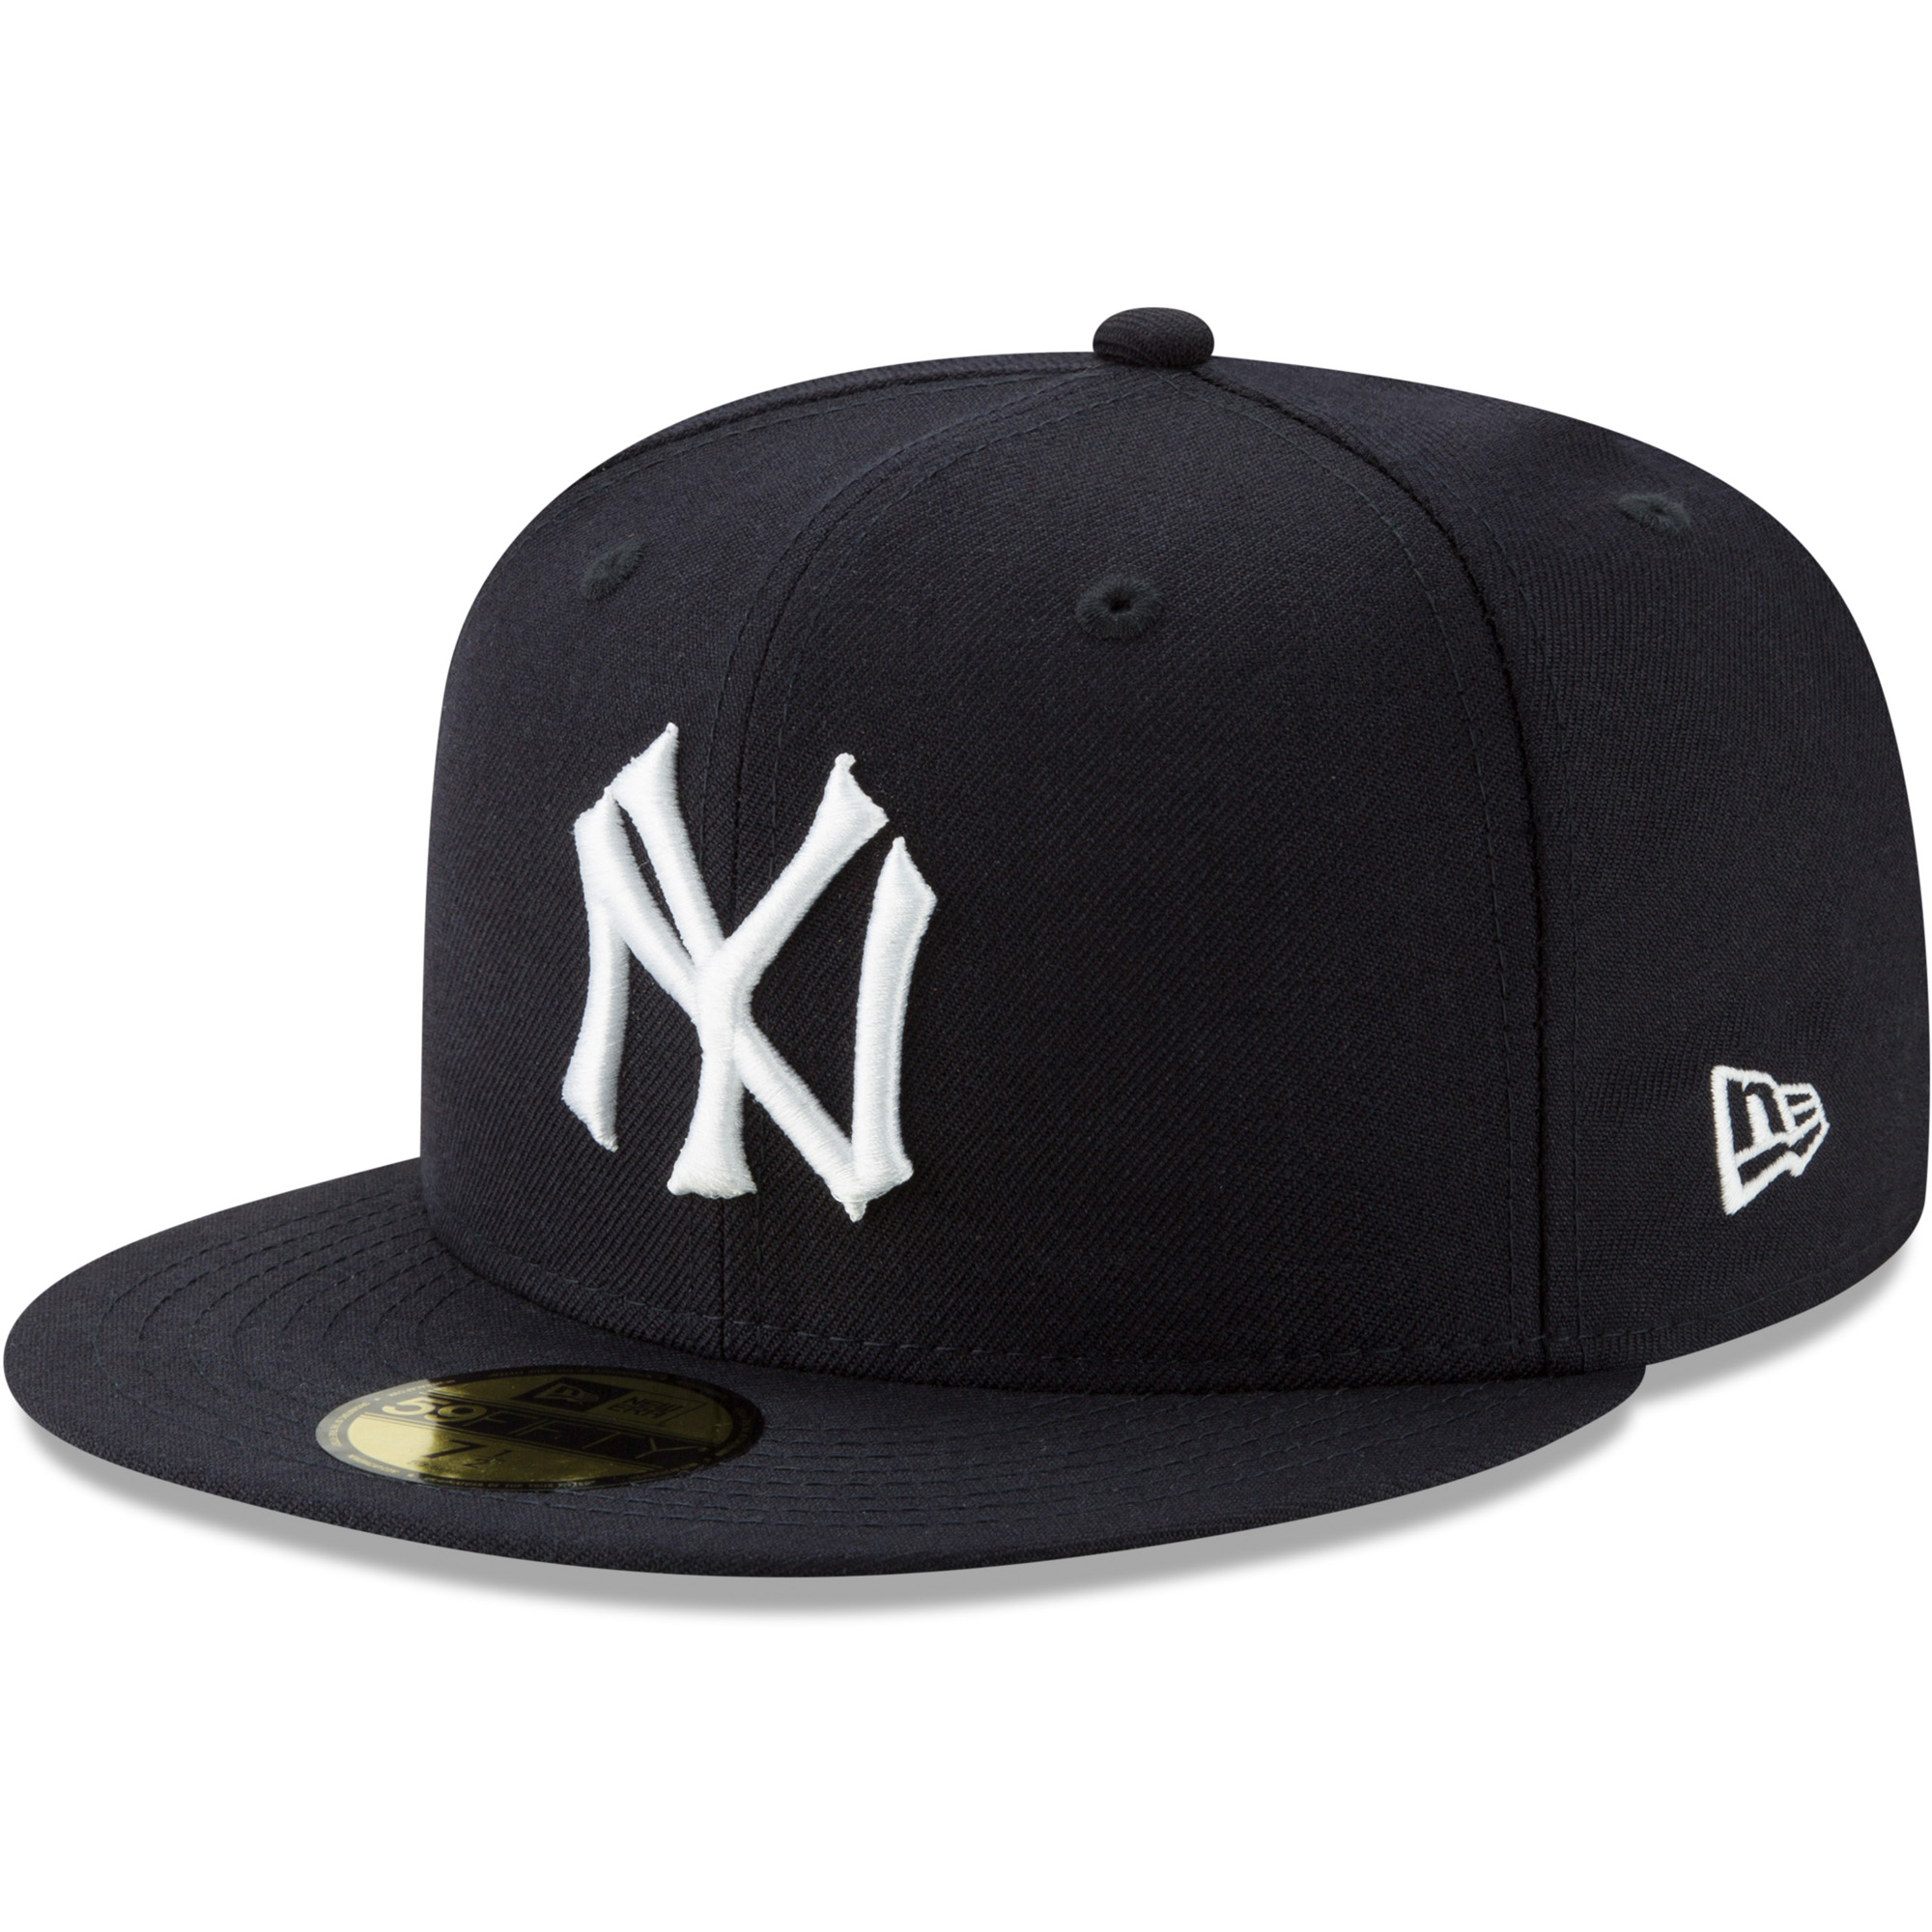 New York Yankees New Era Cooperstown Collection Alt Logo Pack 59FIFTY Fitted Hat - Navy